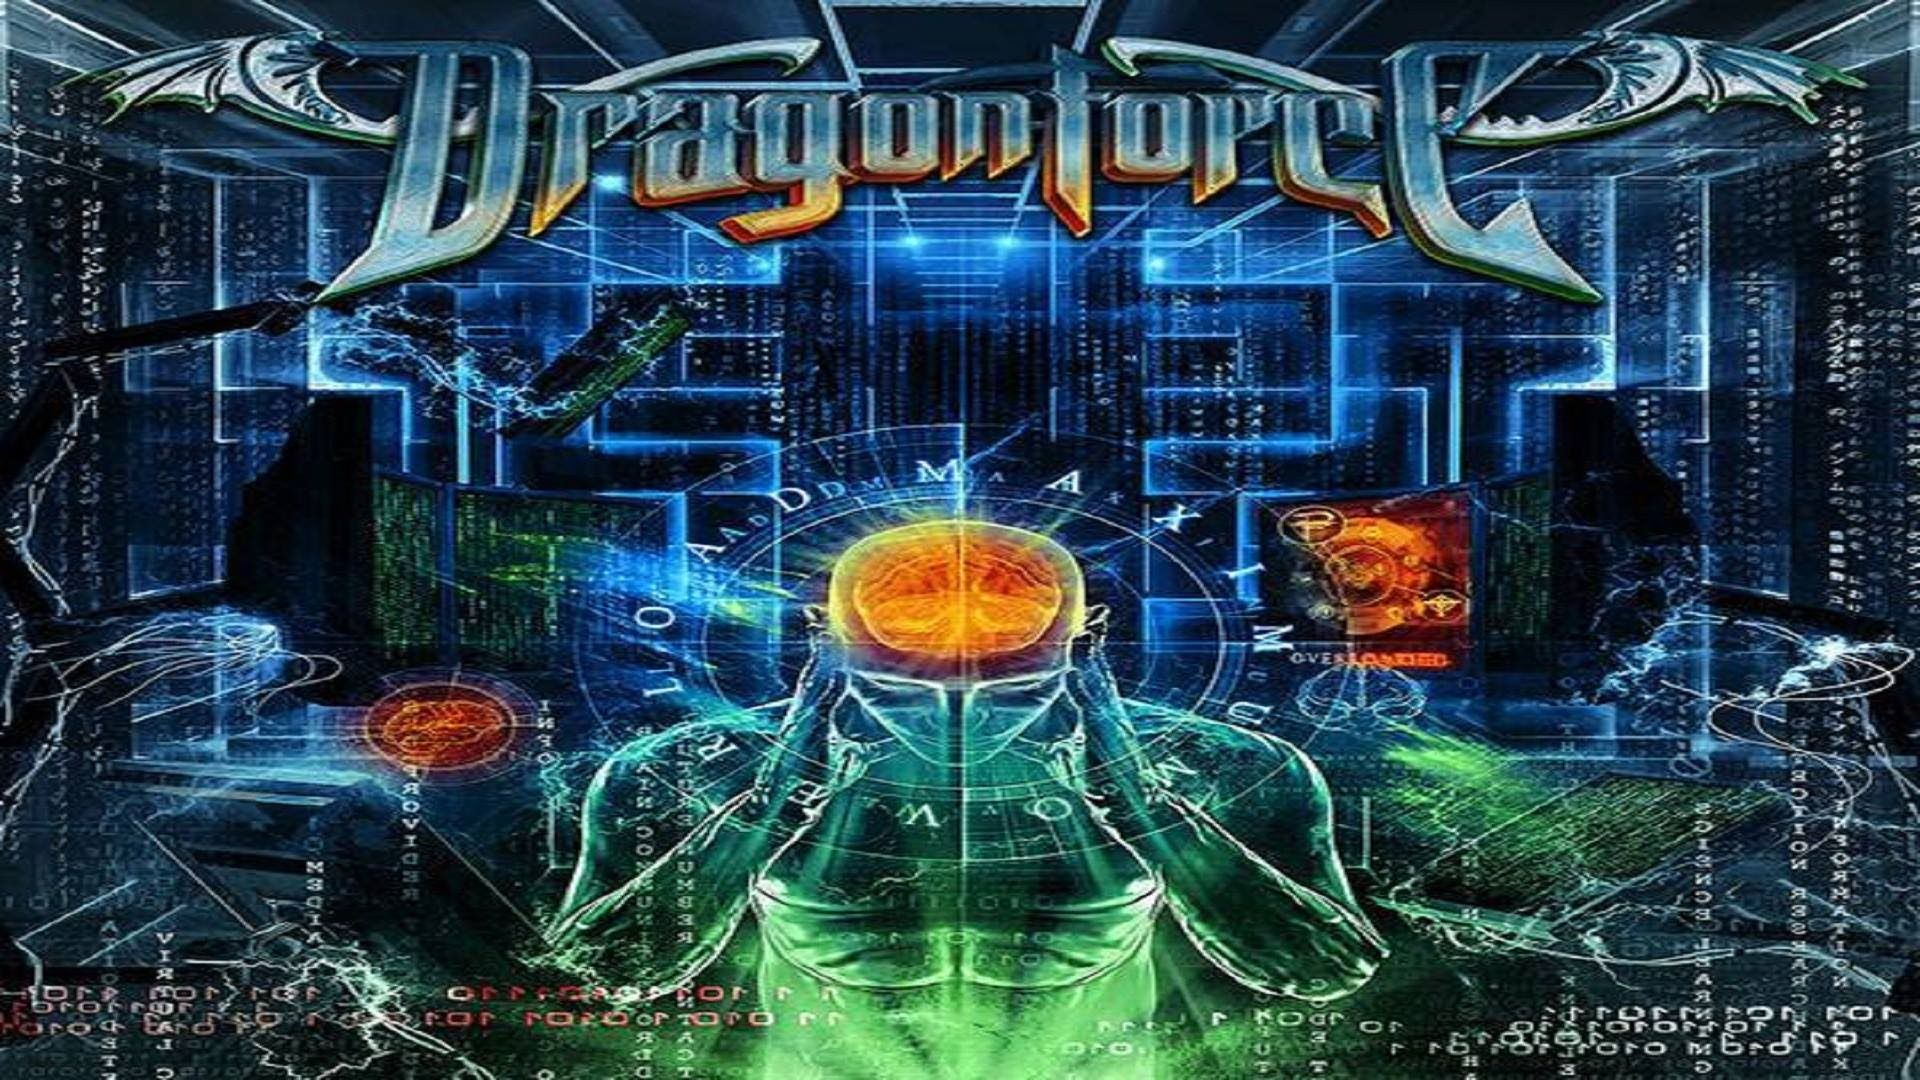 BEATDOWN BAIXAR CD DRAGONFORCE ULTRA